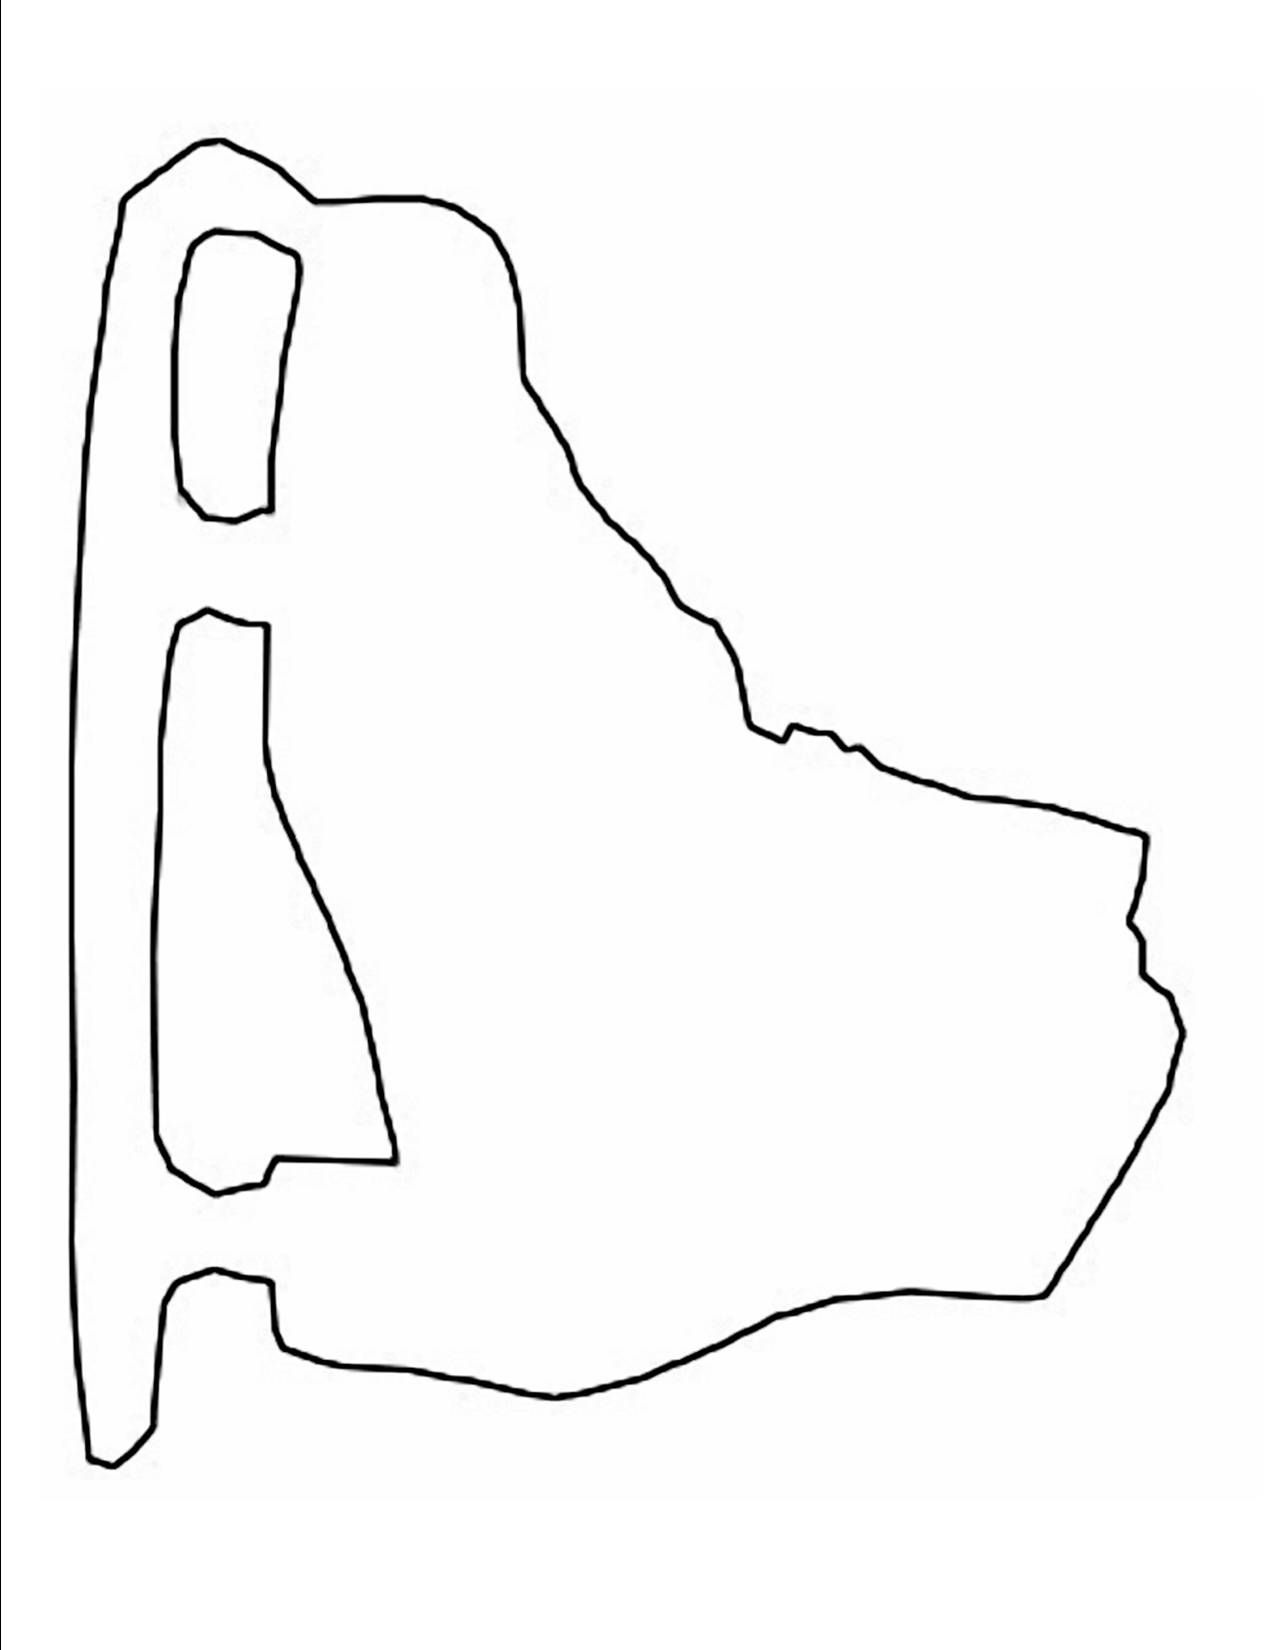 ice skate template for craft could use as choice for marble